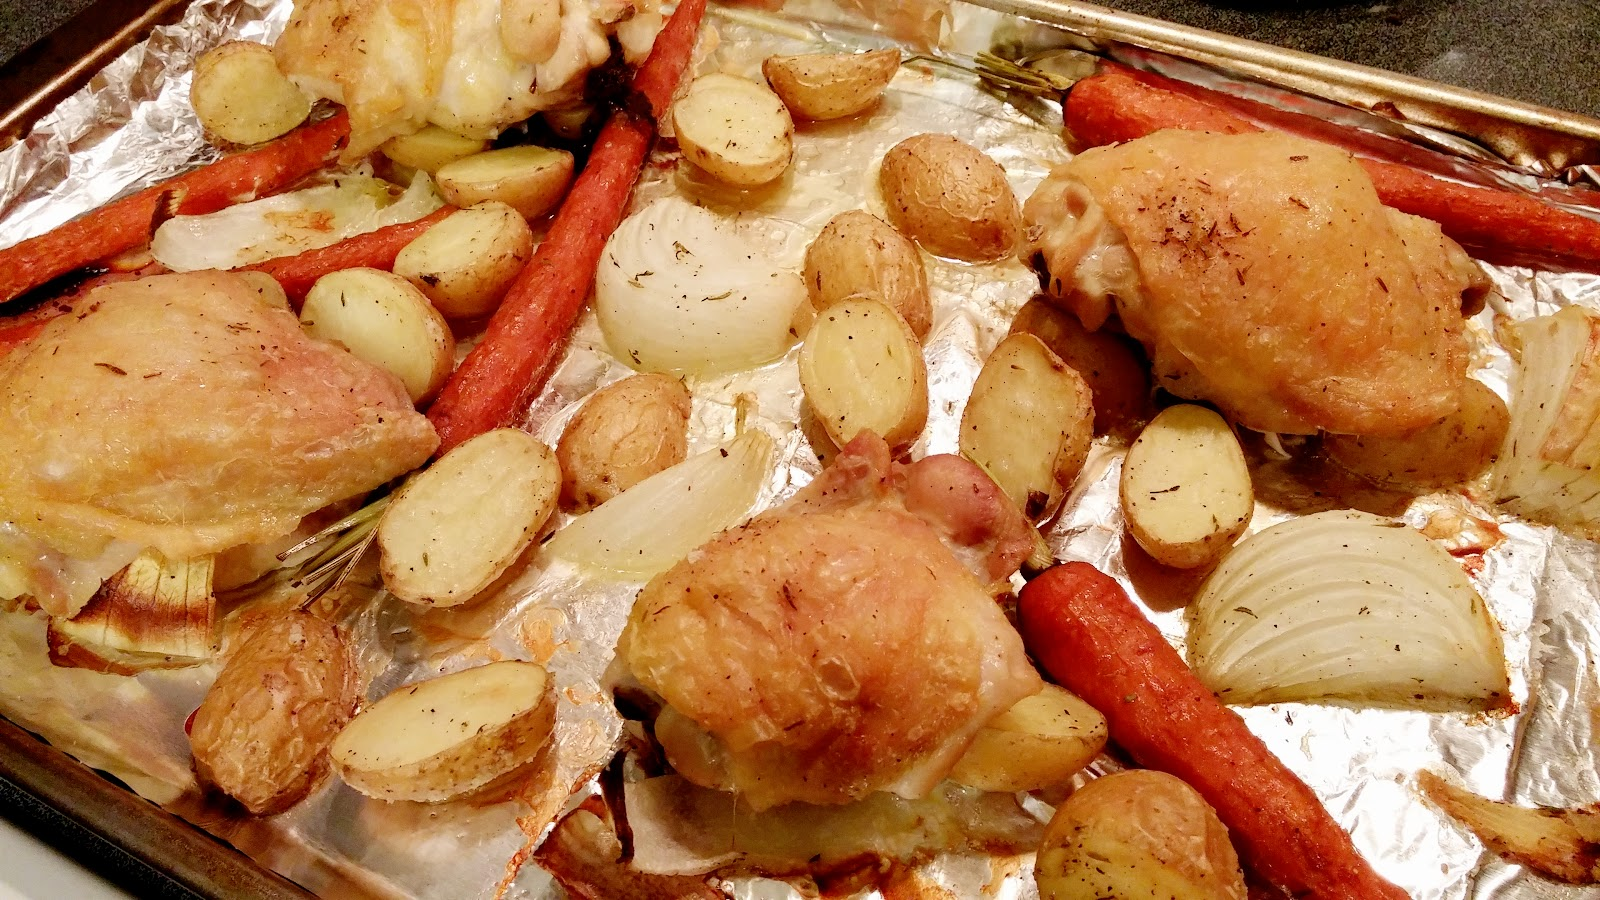 how to cook red potatoes and carrots in oven